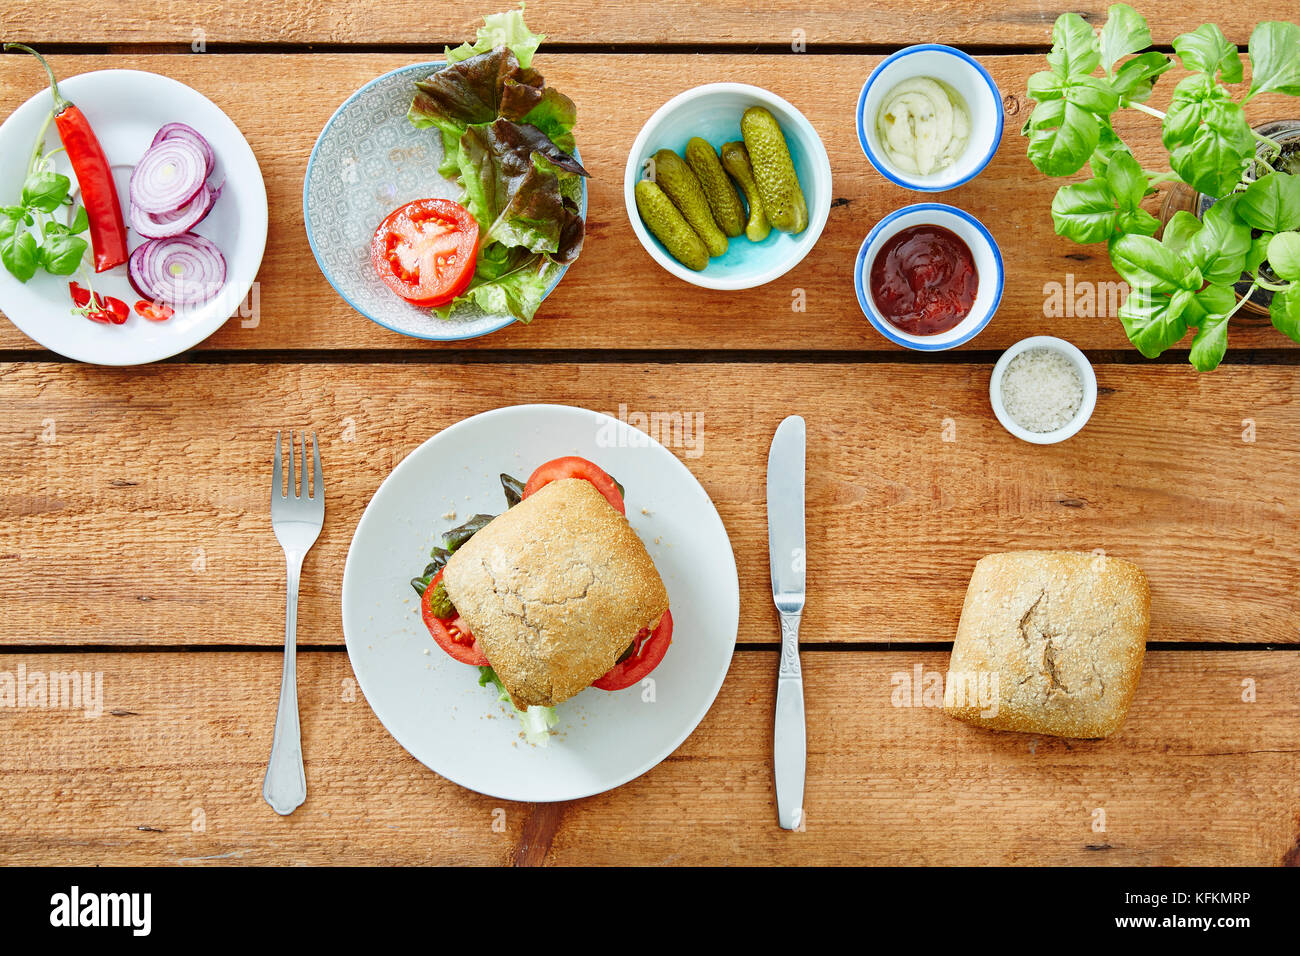 self made sandwich fresh delicious foodie snack - Stock Image